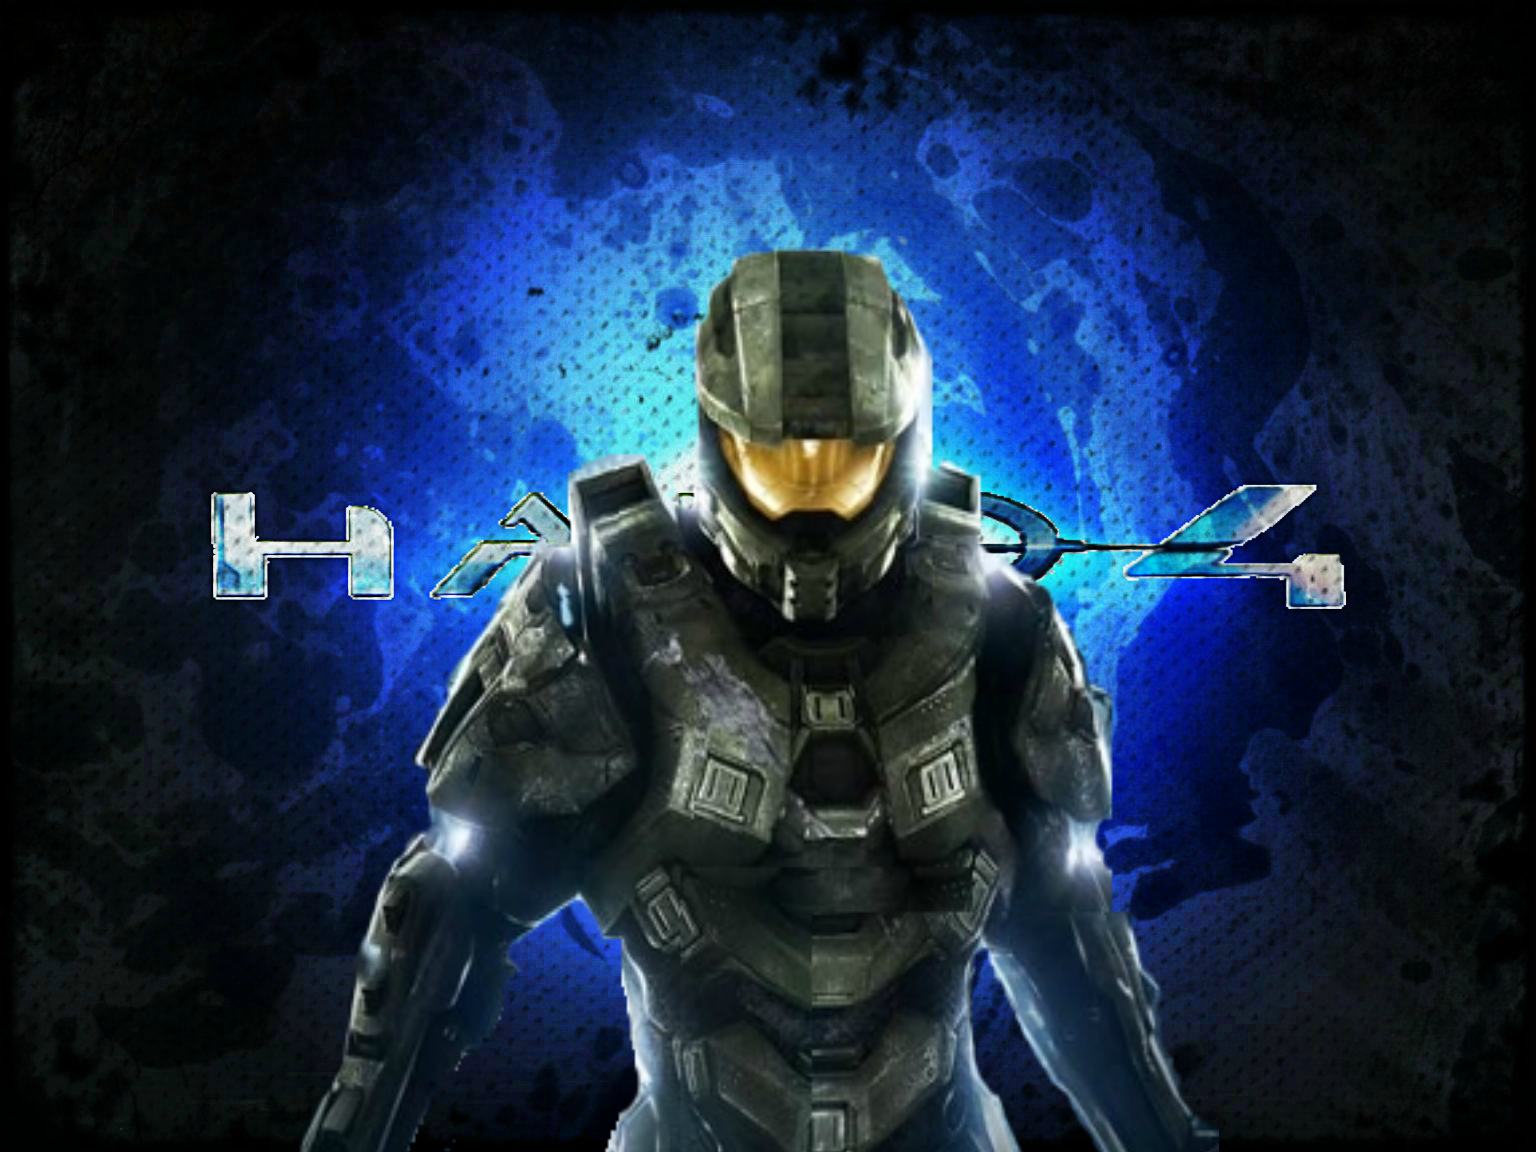 Image halo halo nation the halo encyclopedia - Halo 4 pictures ...